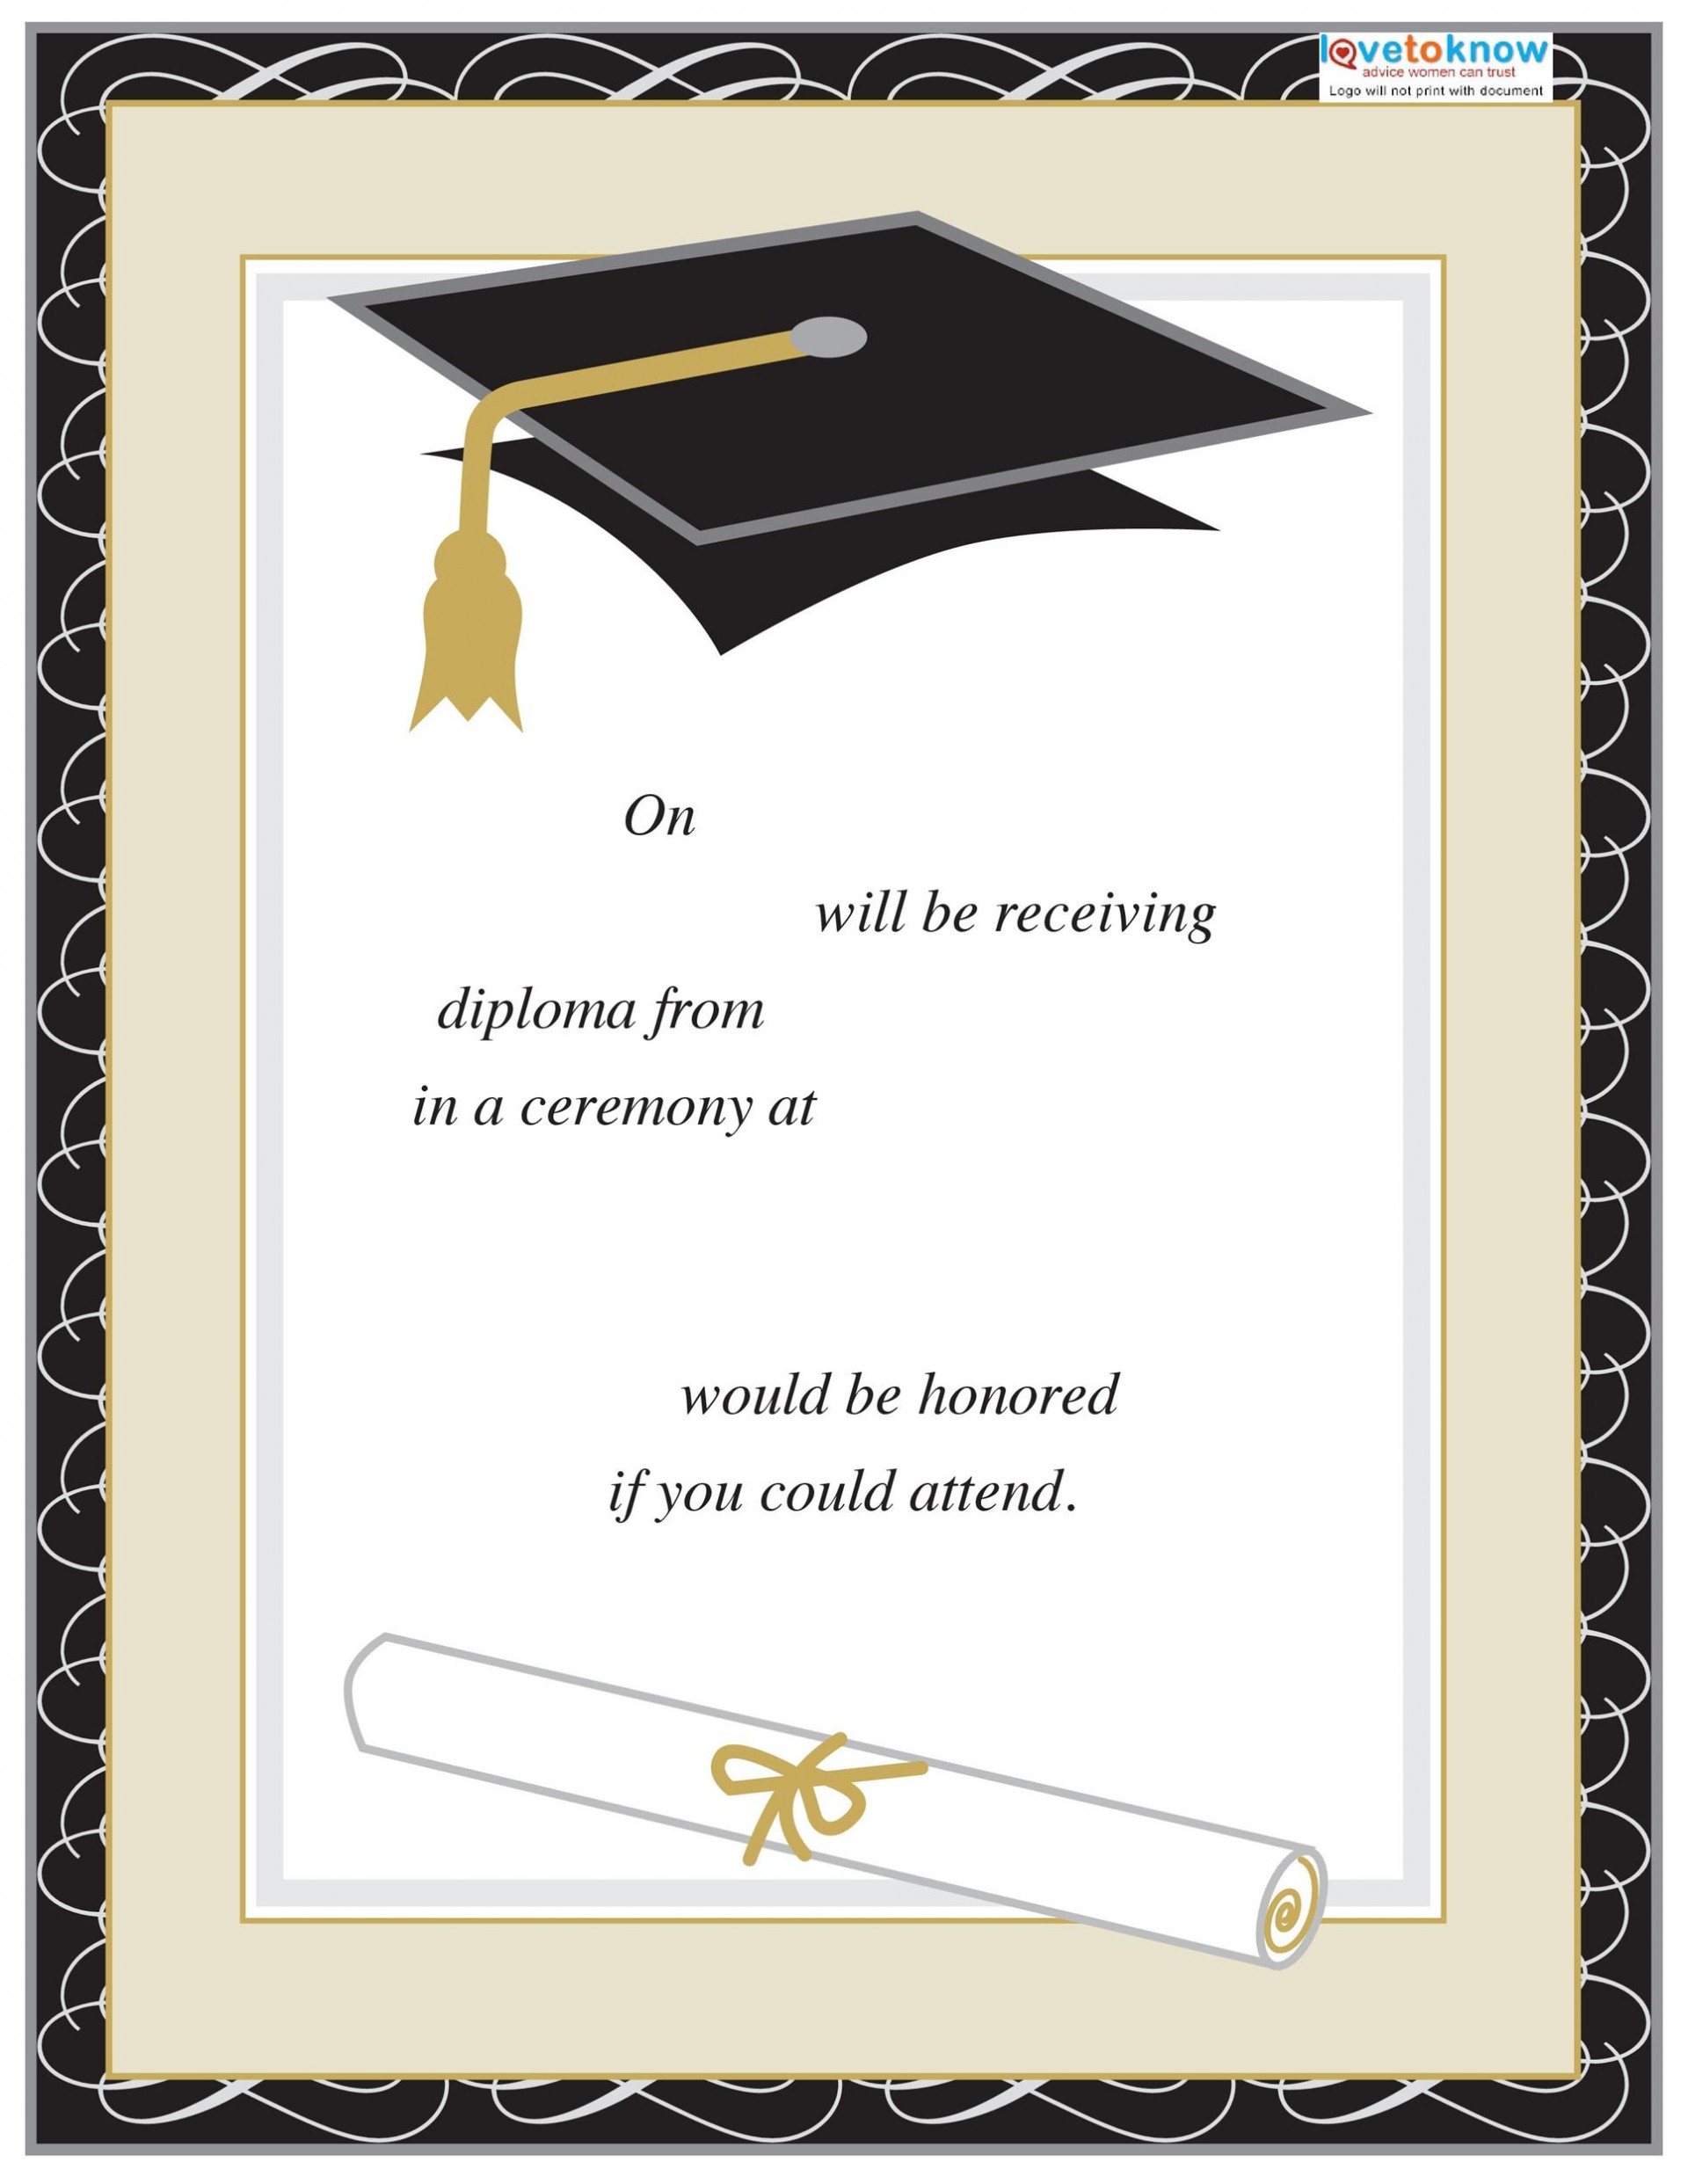 008 Excellent College Graduation Invitation Template Highest Quality  Party Free For Word1920